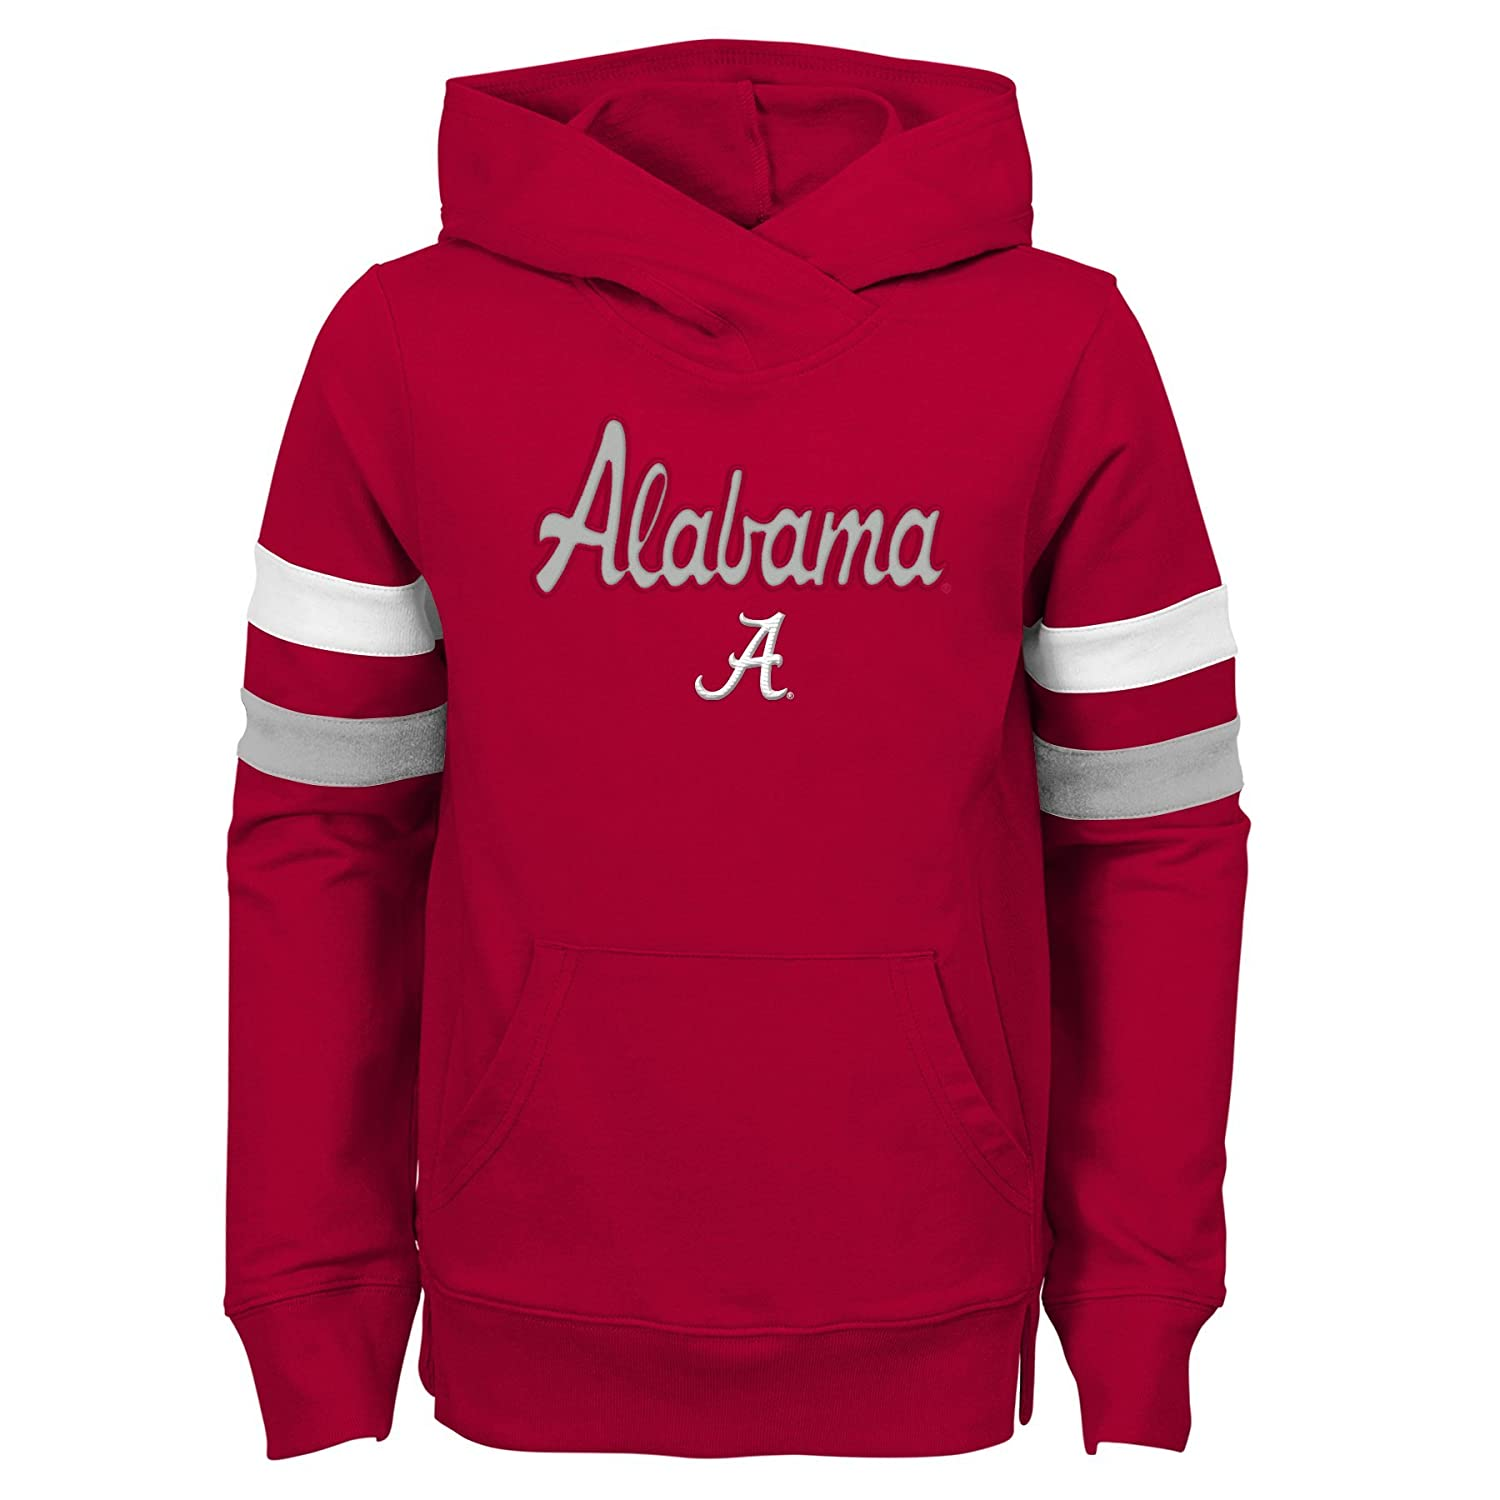 Youth Medium NCAA Alabama Crimson Tide Girls Outerstuff Claim To Fame Overlay Hoodie Team color 10-12